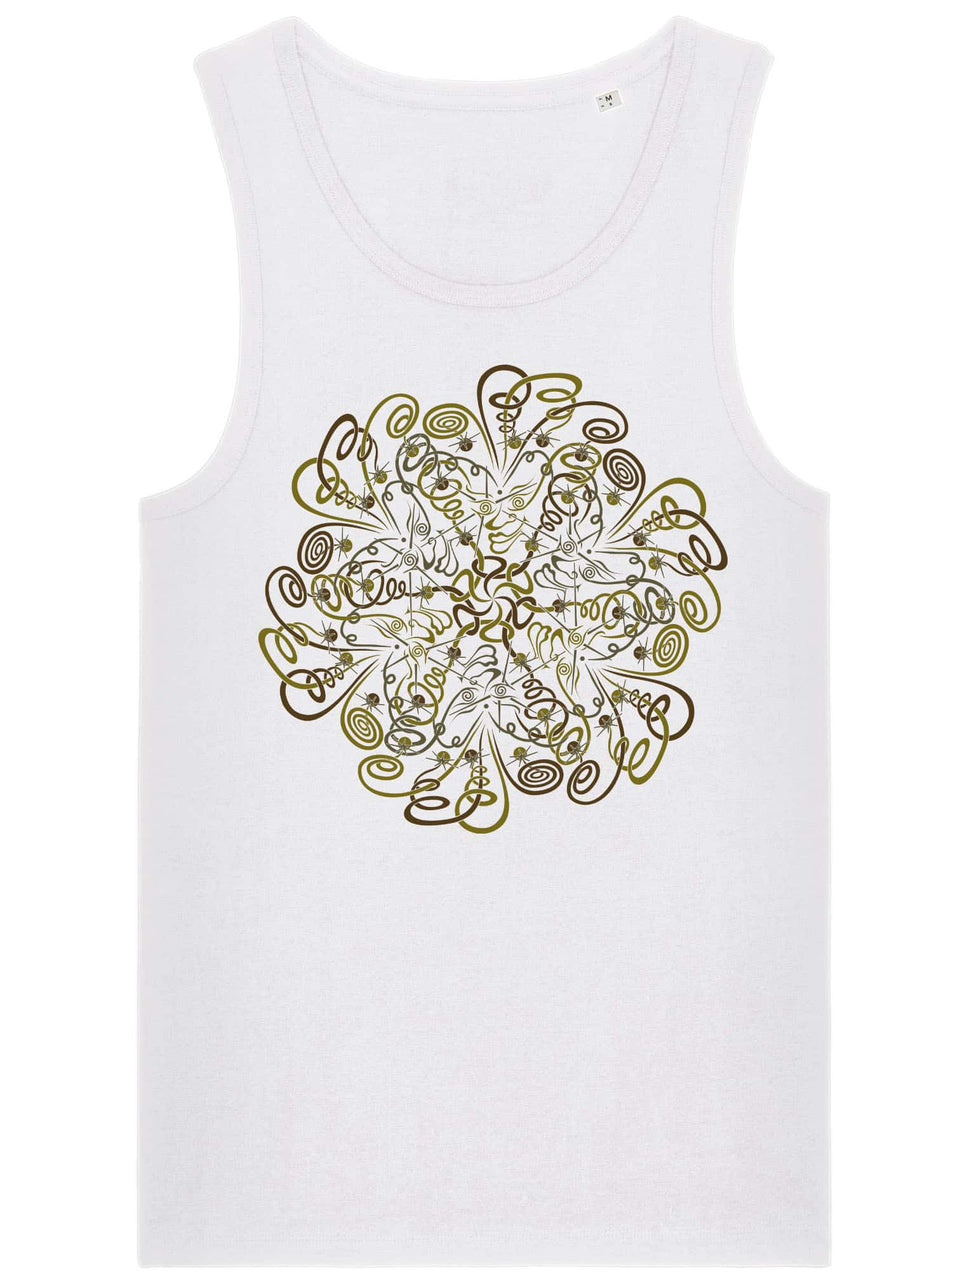 Dymitry Made To Order Men Tank Top - White